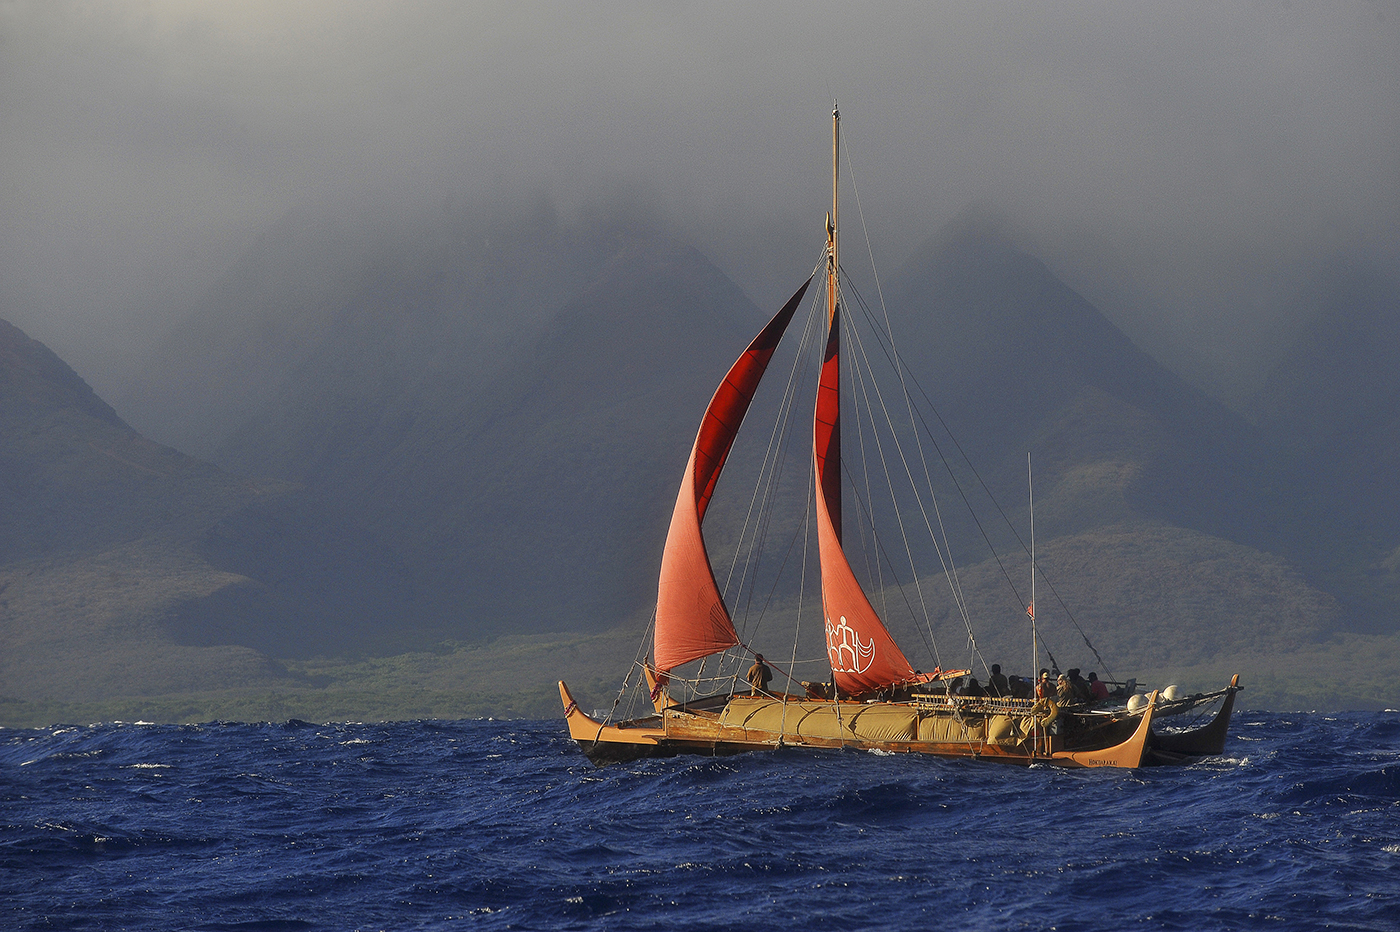 [Hōkūalakaʻi] Deep-sea voyaging canoe.